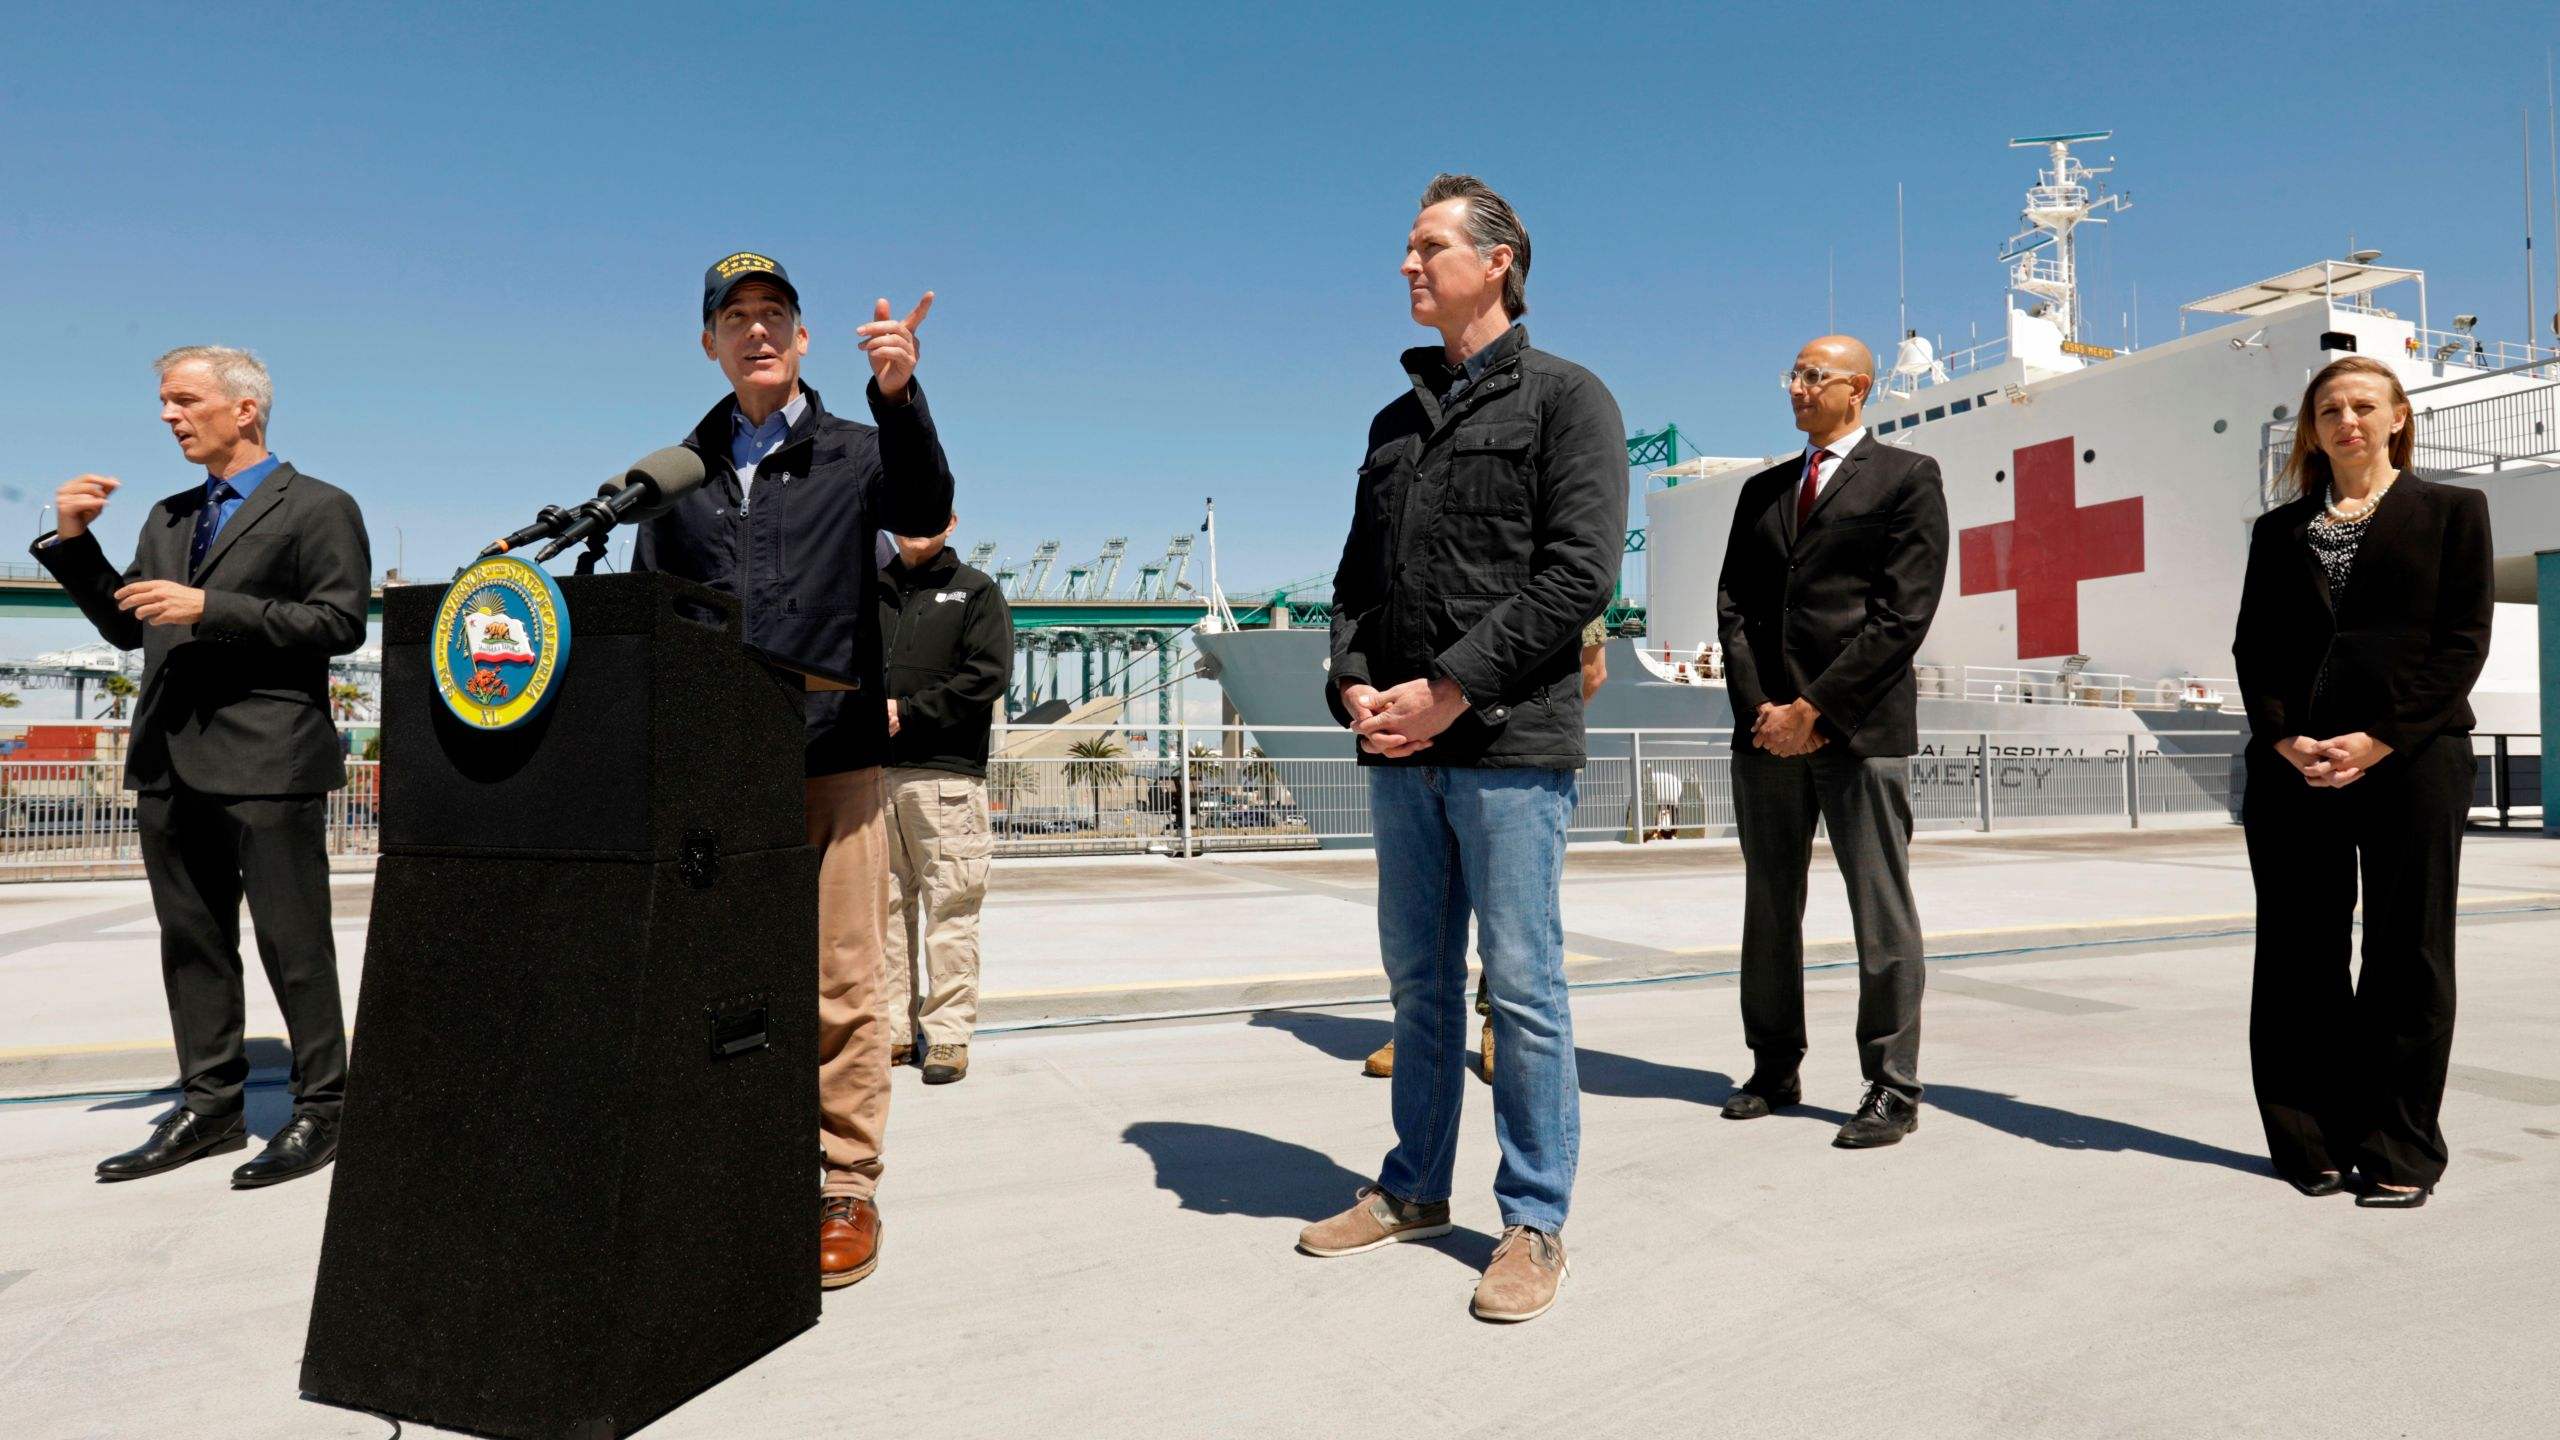 Gov. Gavin Newsom listens as Los Angeles Mayor Eric Garcetti speaks in front of the USNS Mercy hospital ship after it arrived into the Port of Los Angeles on March 27, 2020. (CAROLYN COLE/POOL/AFP via Getty Images)